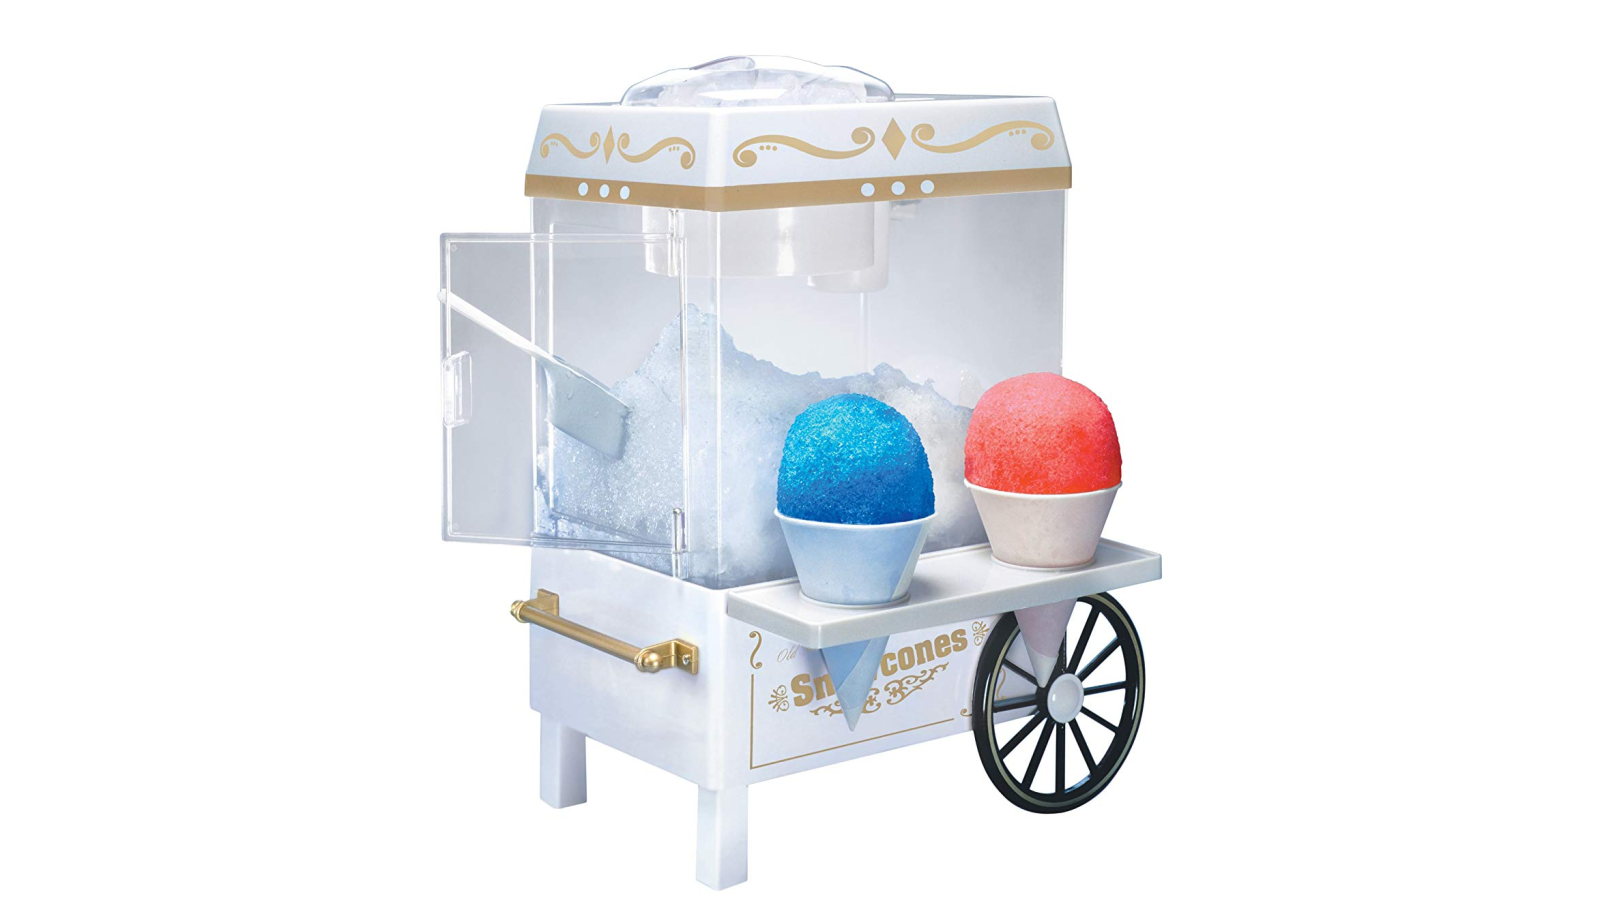 You'll want to have this Nostalgia Vintage Snow Cone Maker for summertime: $22 (Reg. up to $40)